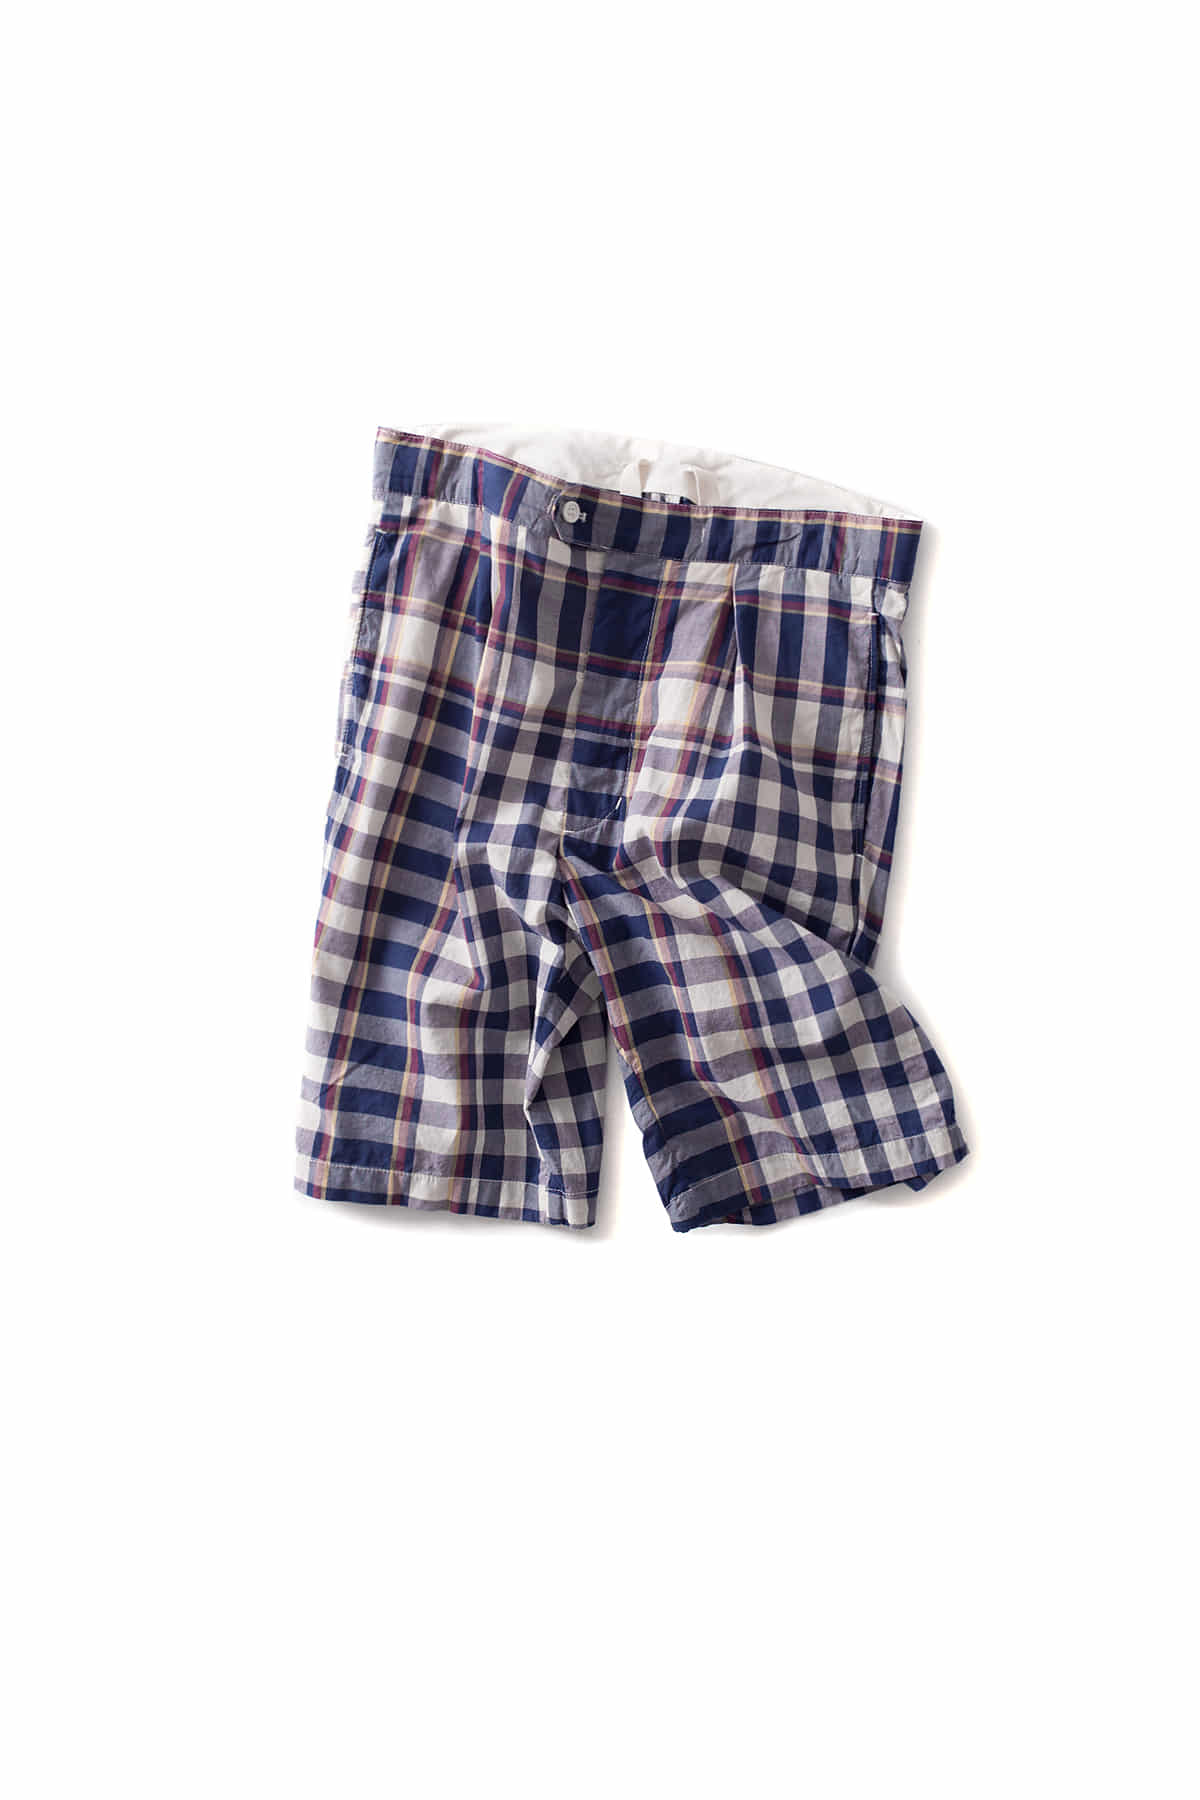 Engineered Garments : Sunset Short (Navy/Red/Yellow Big Plaid Madras)